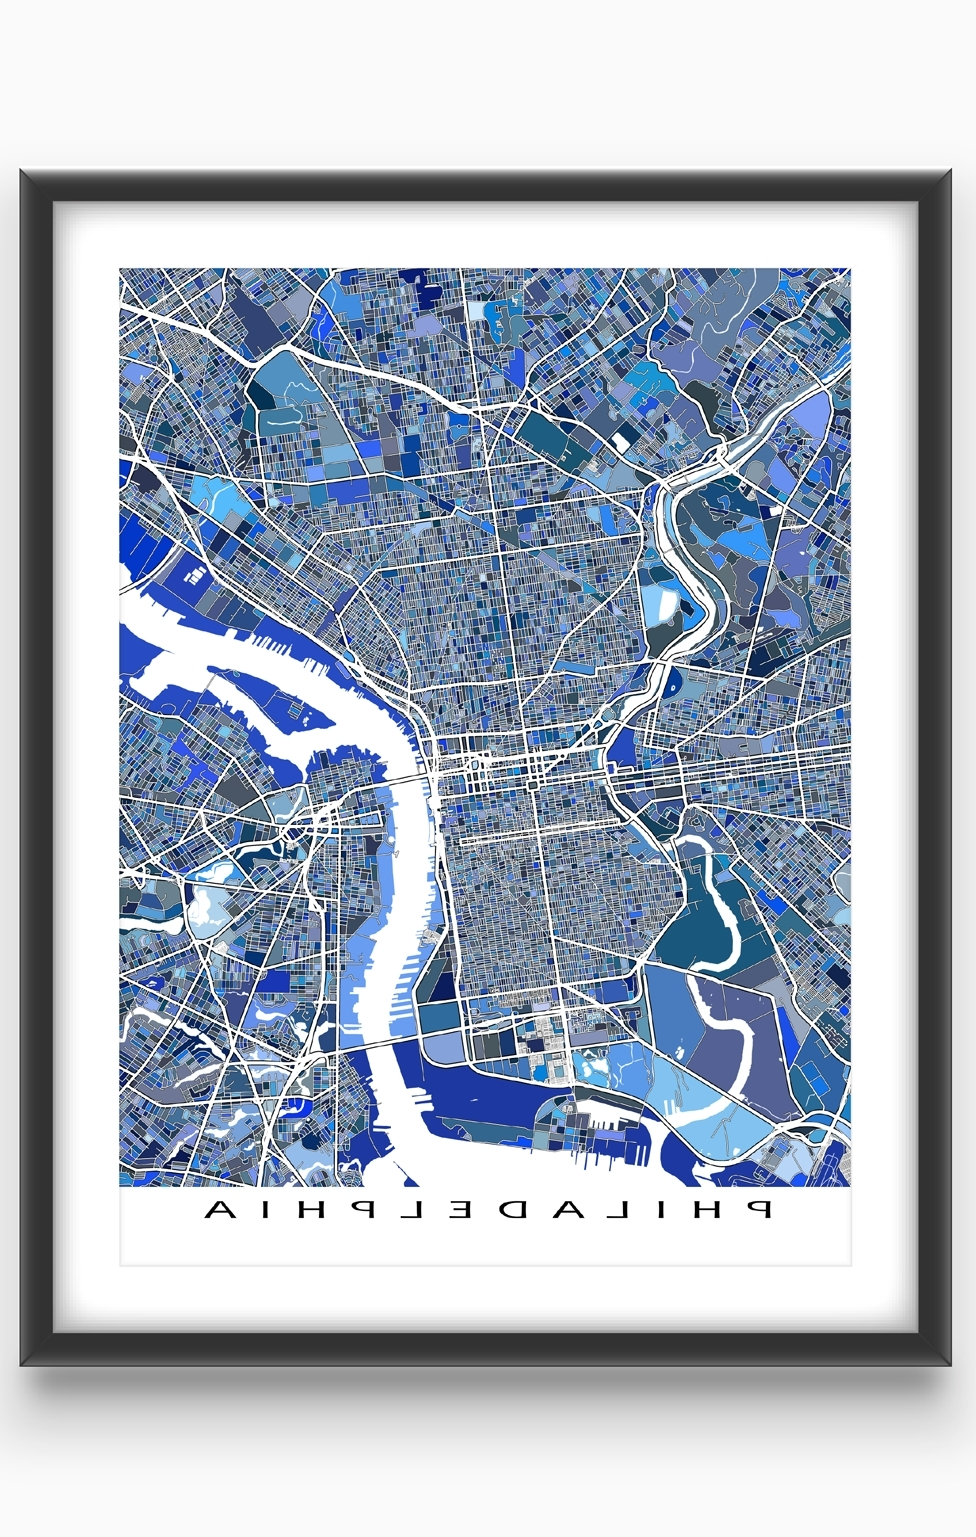 Do You Love Philadelphia Pennsylvania? Then This Philadelphia Map In 2018 Philadelphia Map Wall Art (View 5 of 20)